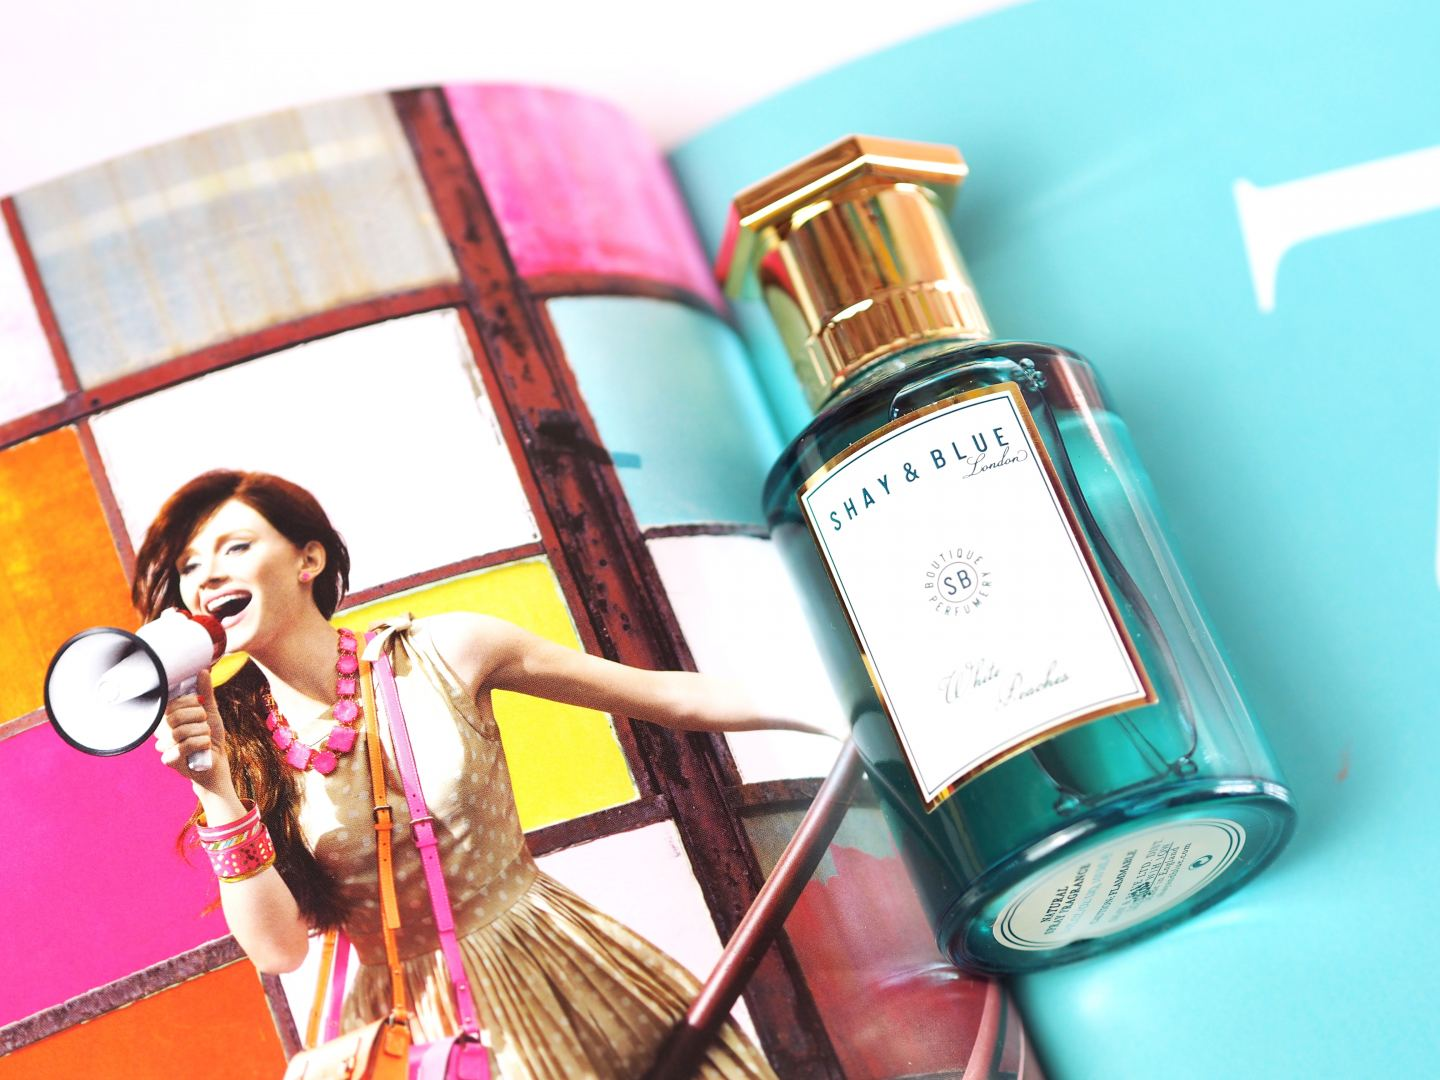 niche spring perfume Shay & blue 'White Peaches' perfume review